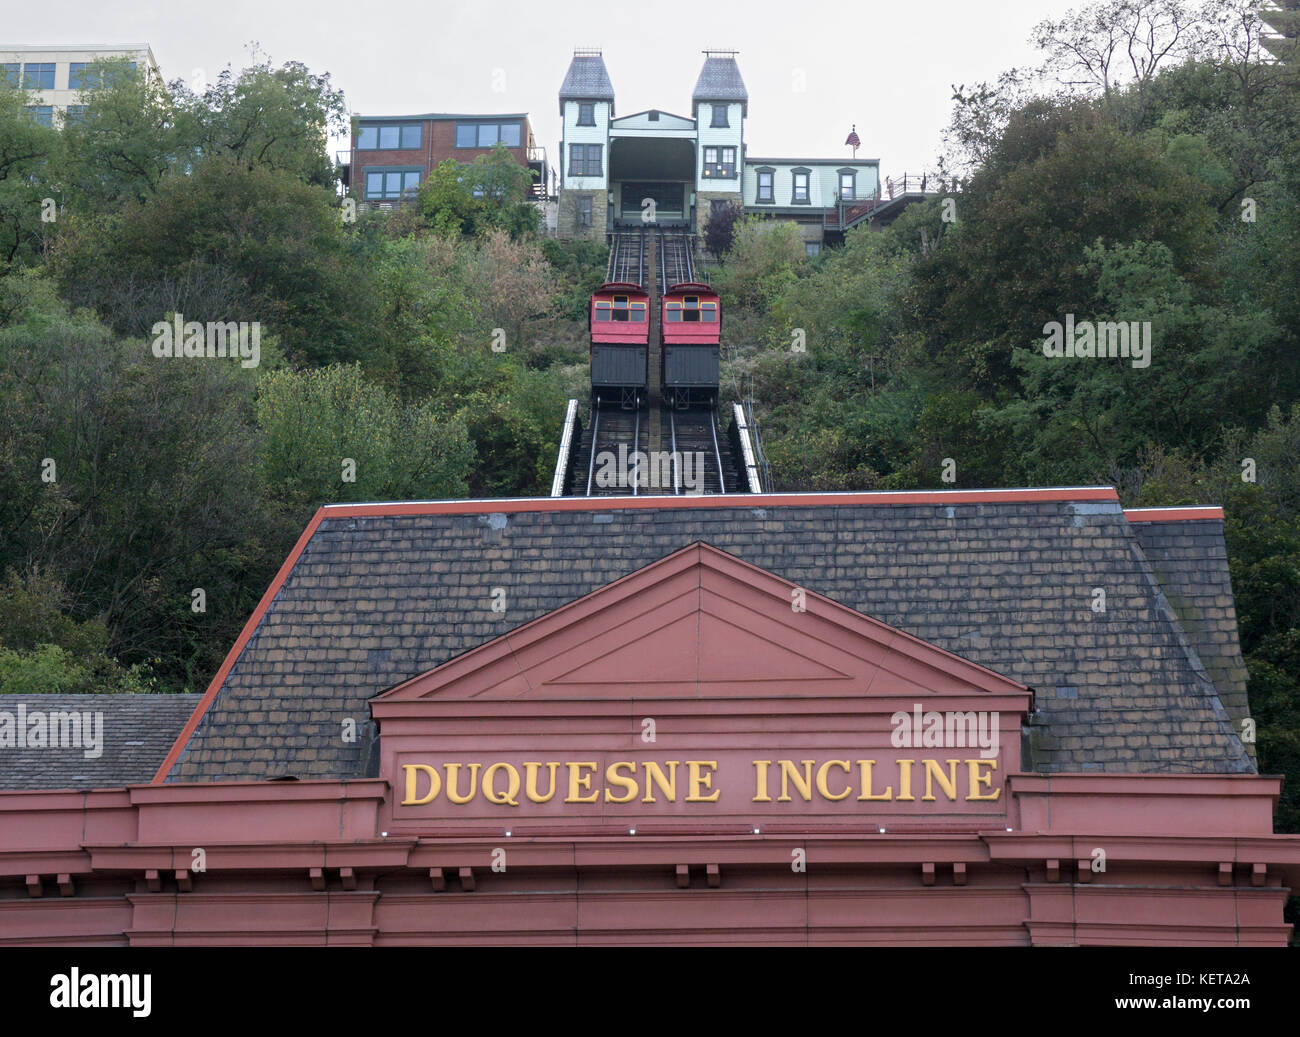 Two wooden cable cars, one ascending the other descending the Duquesne Incline tourist spot in Pittsburgh, Pennsylvania. - Stock Image